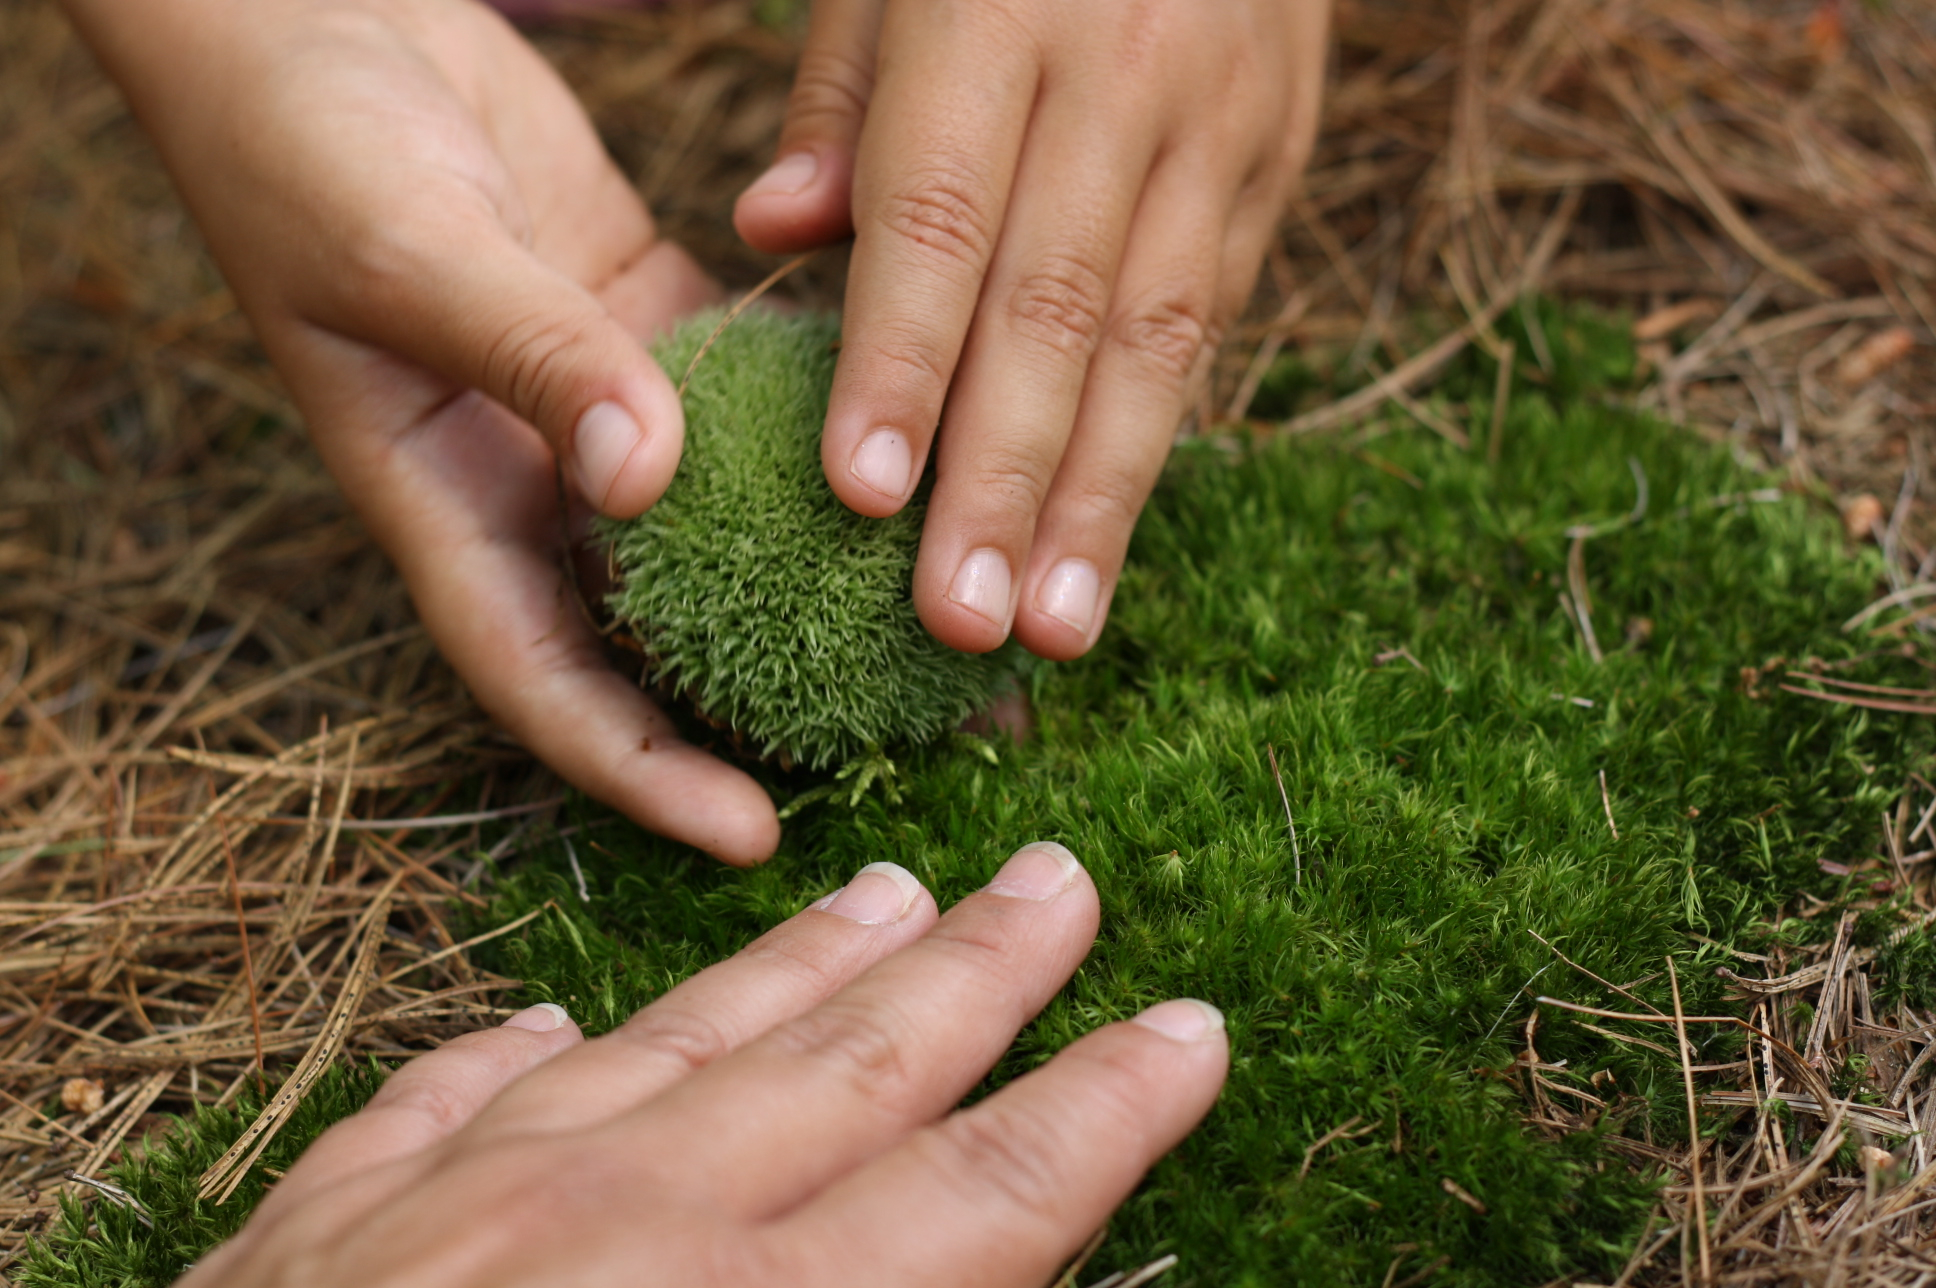 Let's touch this moss Mom, by Fig and me.